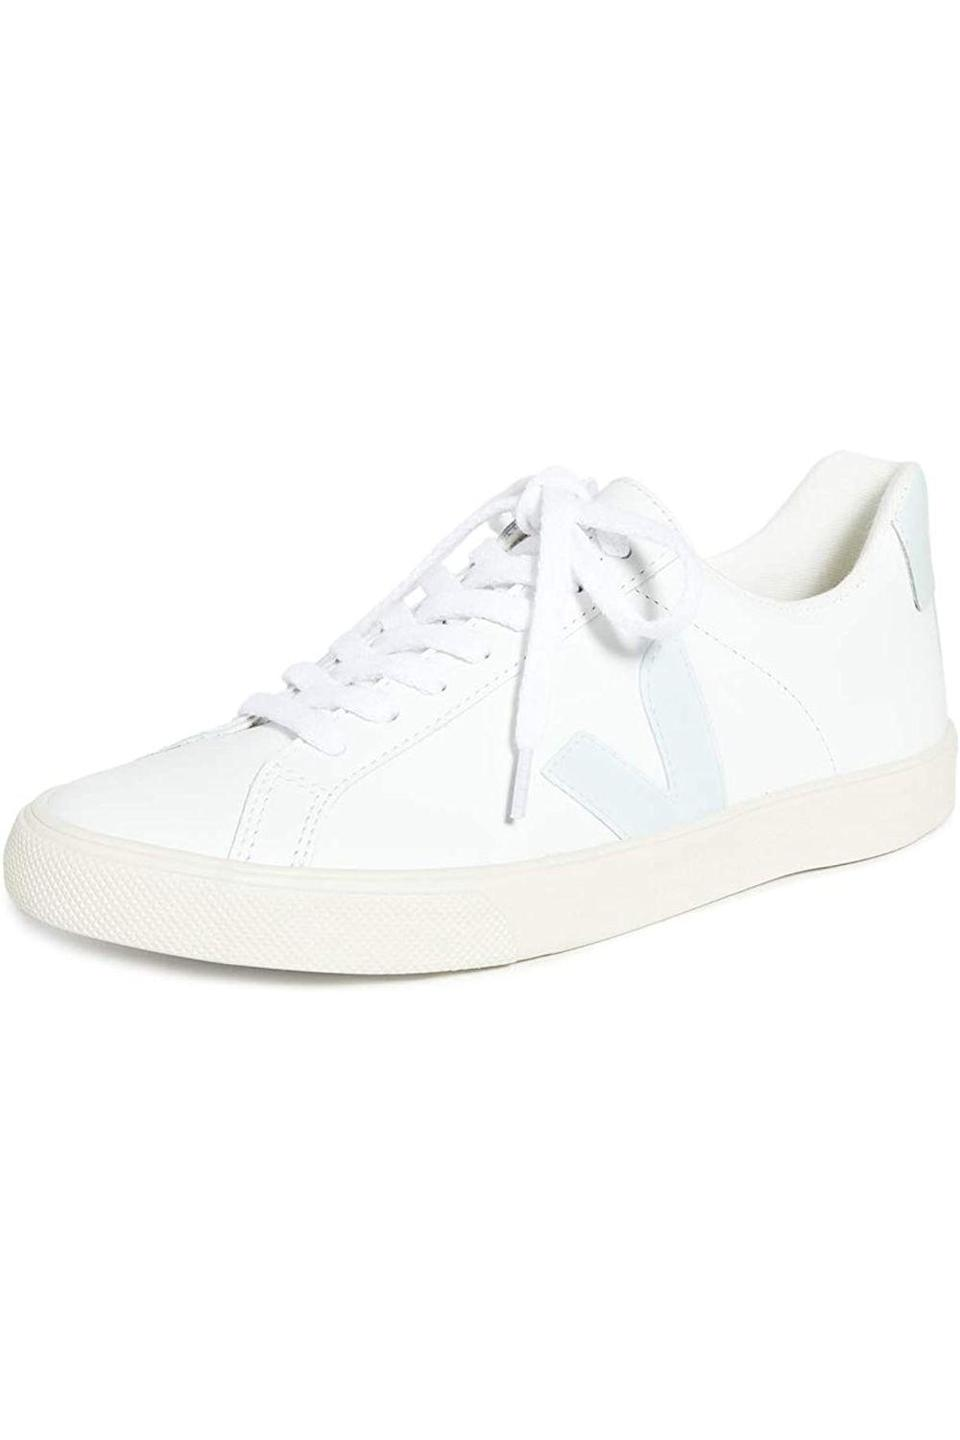 "<p><strong>Veja</strong></p><p>amazon.com</p><p><strong>$120.00</strong></p><p><a href=""https://www.amazon.com/dp/B07VPQYM5F?tag=syn-yahoo-20&ascsubtag=%5Bartid%7C10049.g.35998108%5Bsrc%7Cyahoo-us"" rel=""nofollow noopener"" target=""_blank"" data-ylk=""slk:SHOP NOW"" class=""link rapid-noclick-resp"">SHOP NOW</a></p><p>Everyone needs clean white sneakers, but if your mom's pair is looking a little worn out lately or if she needs some in her life, get her these ones she can wear to comfortably and stylishly run all her errands.</p>"